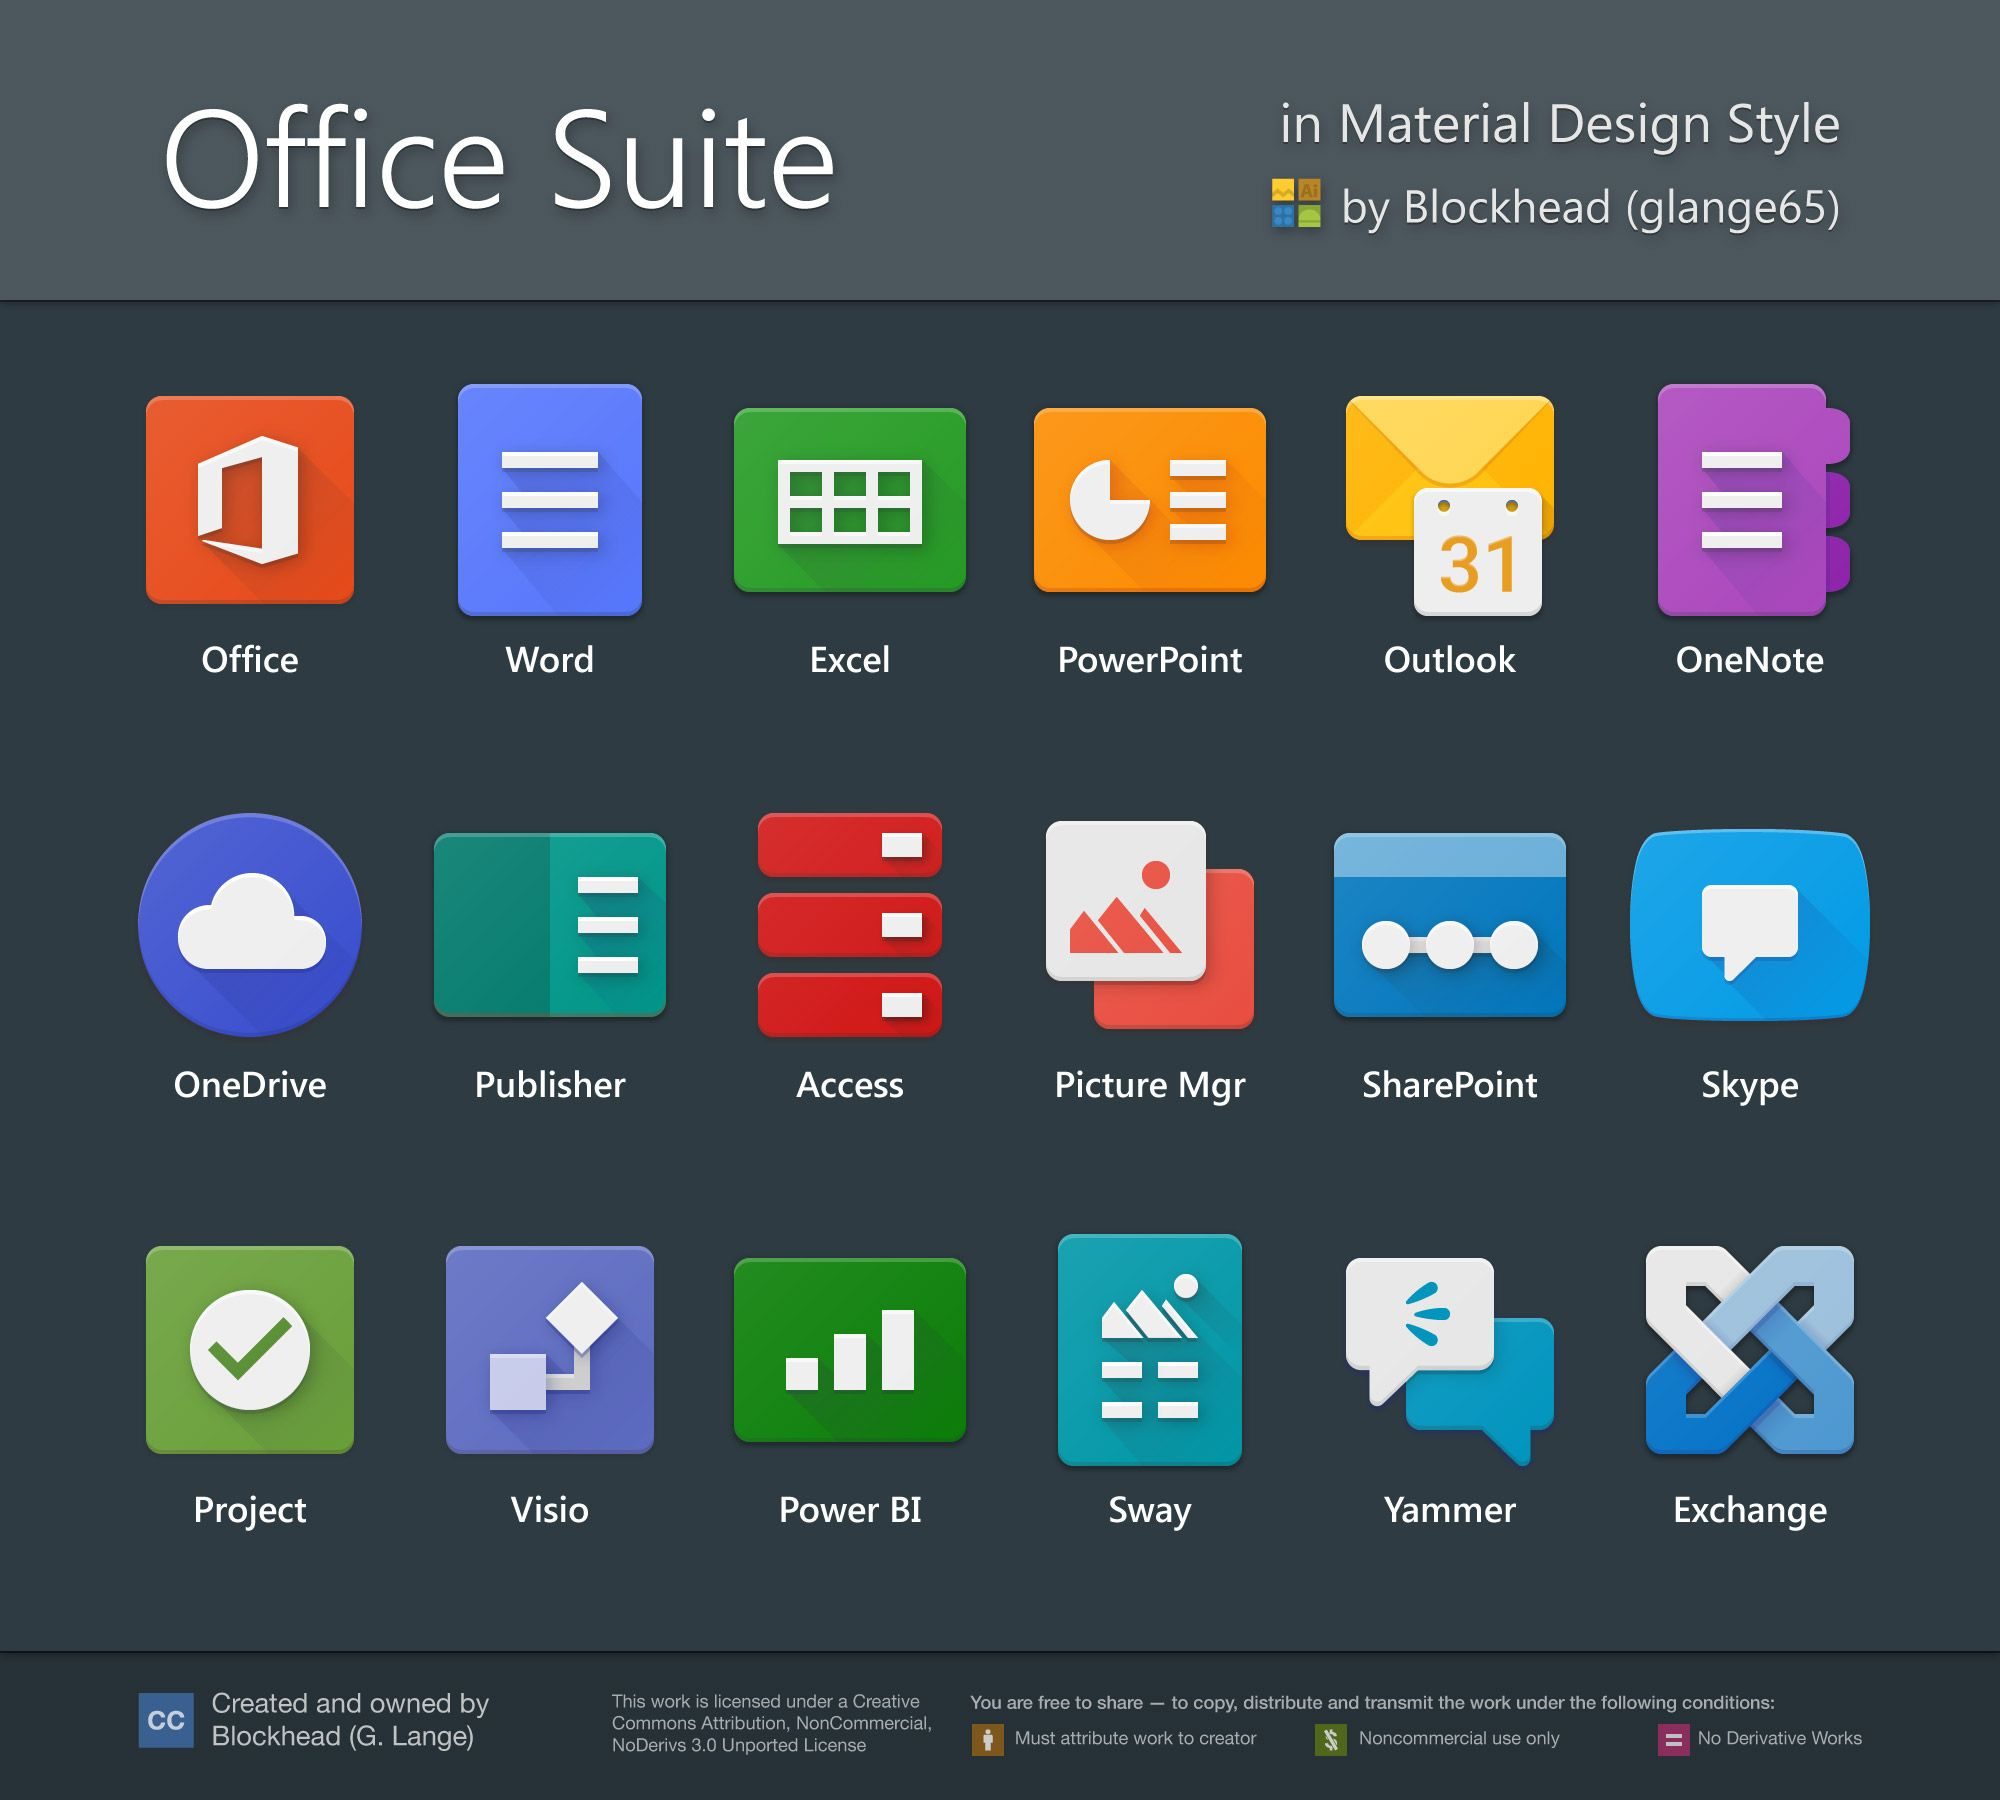 Office Suite in Material Design by glange65 deviantart com